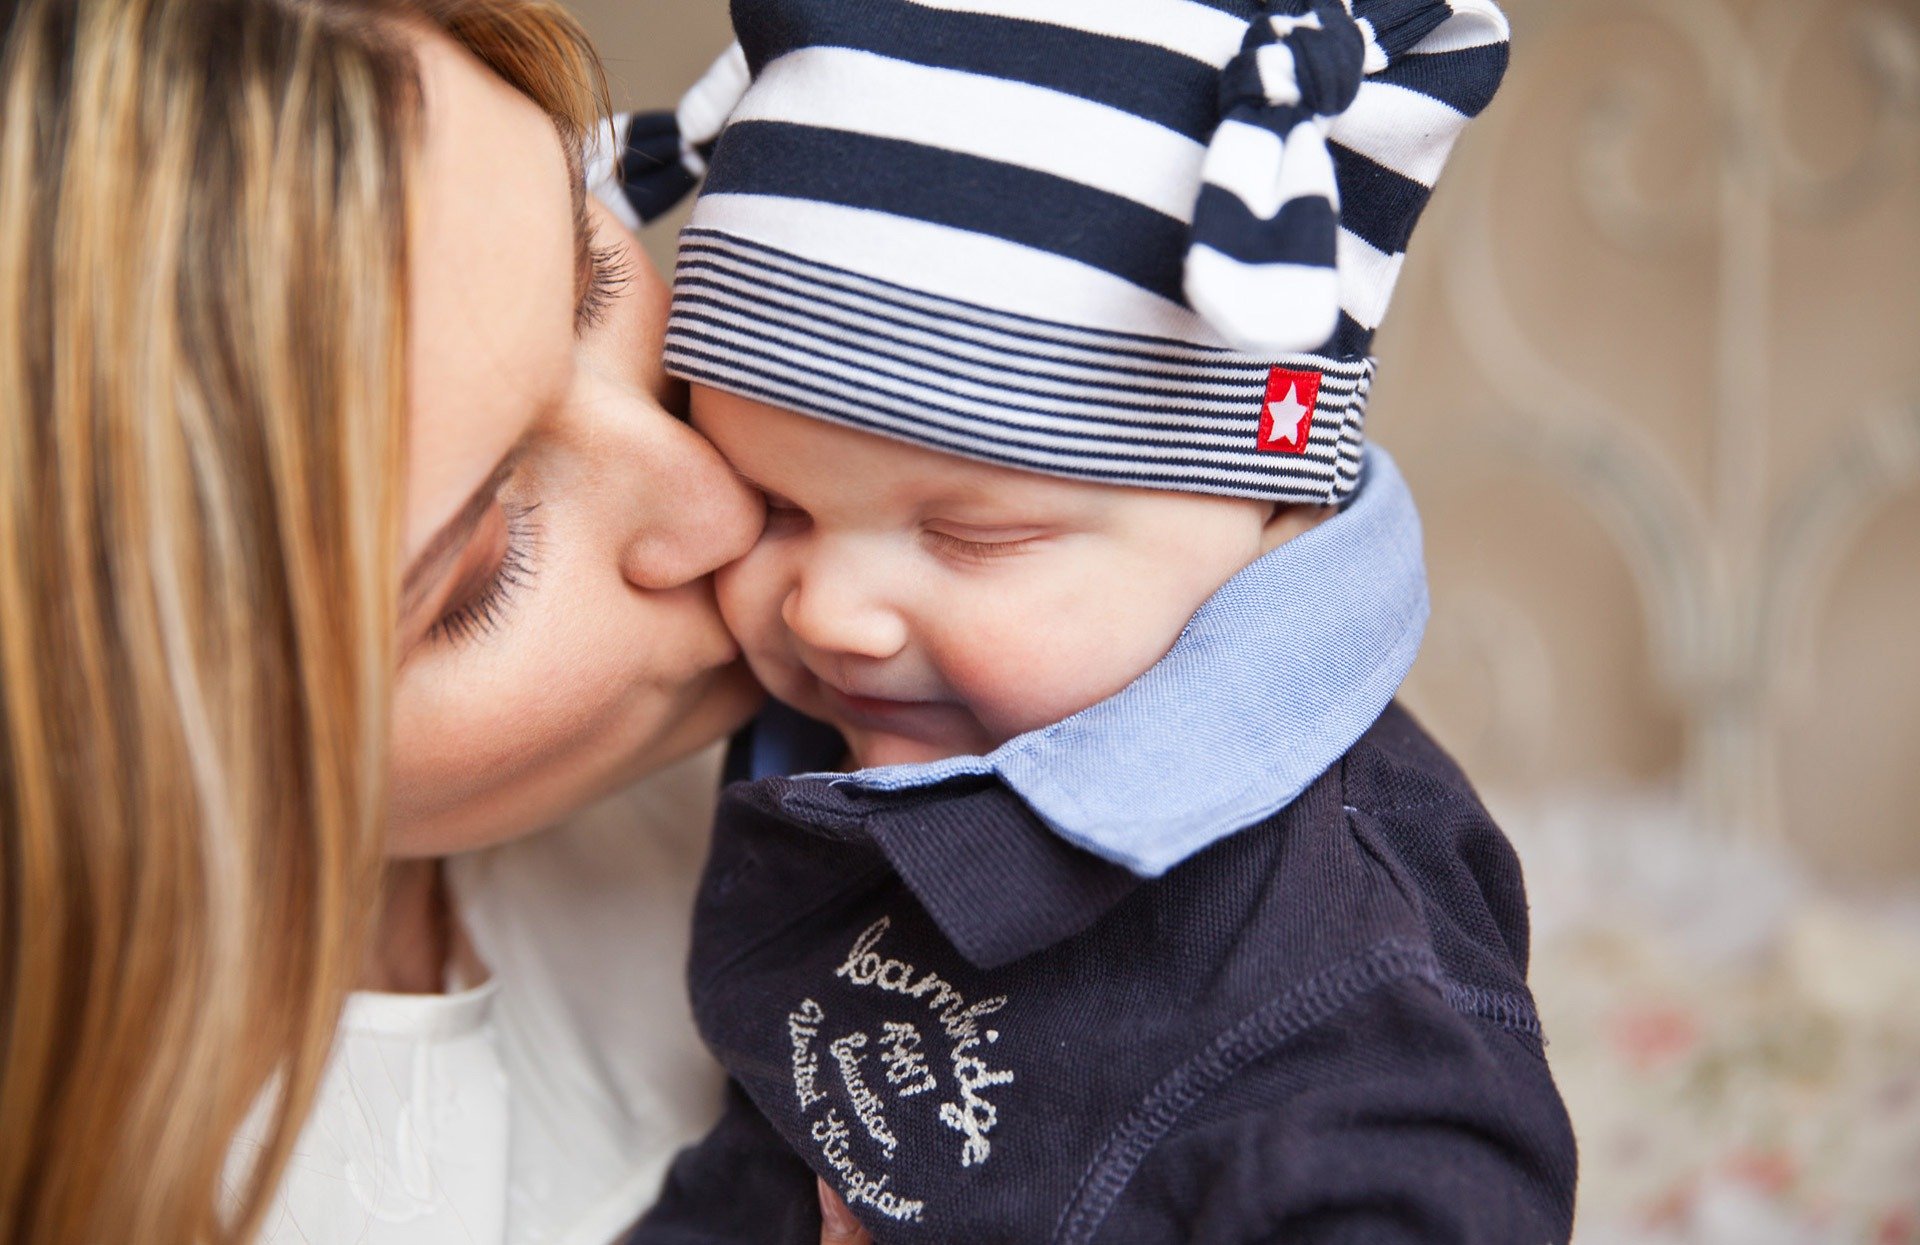 canva_woman_in_white_shirt_kissing_baby_with_black_and_white_stripe_knit_cap.jpg